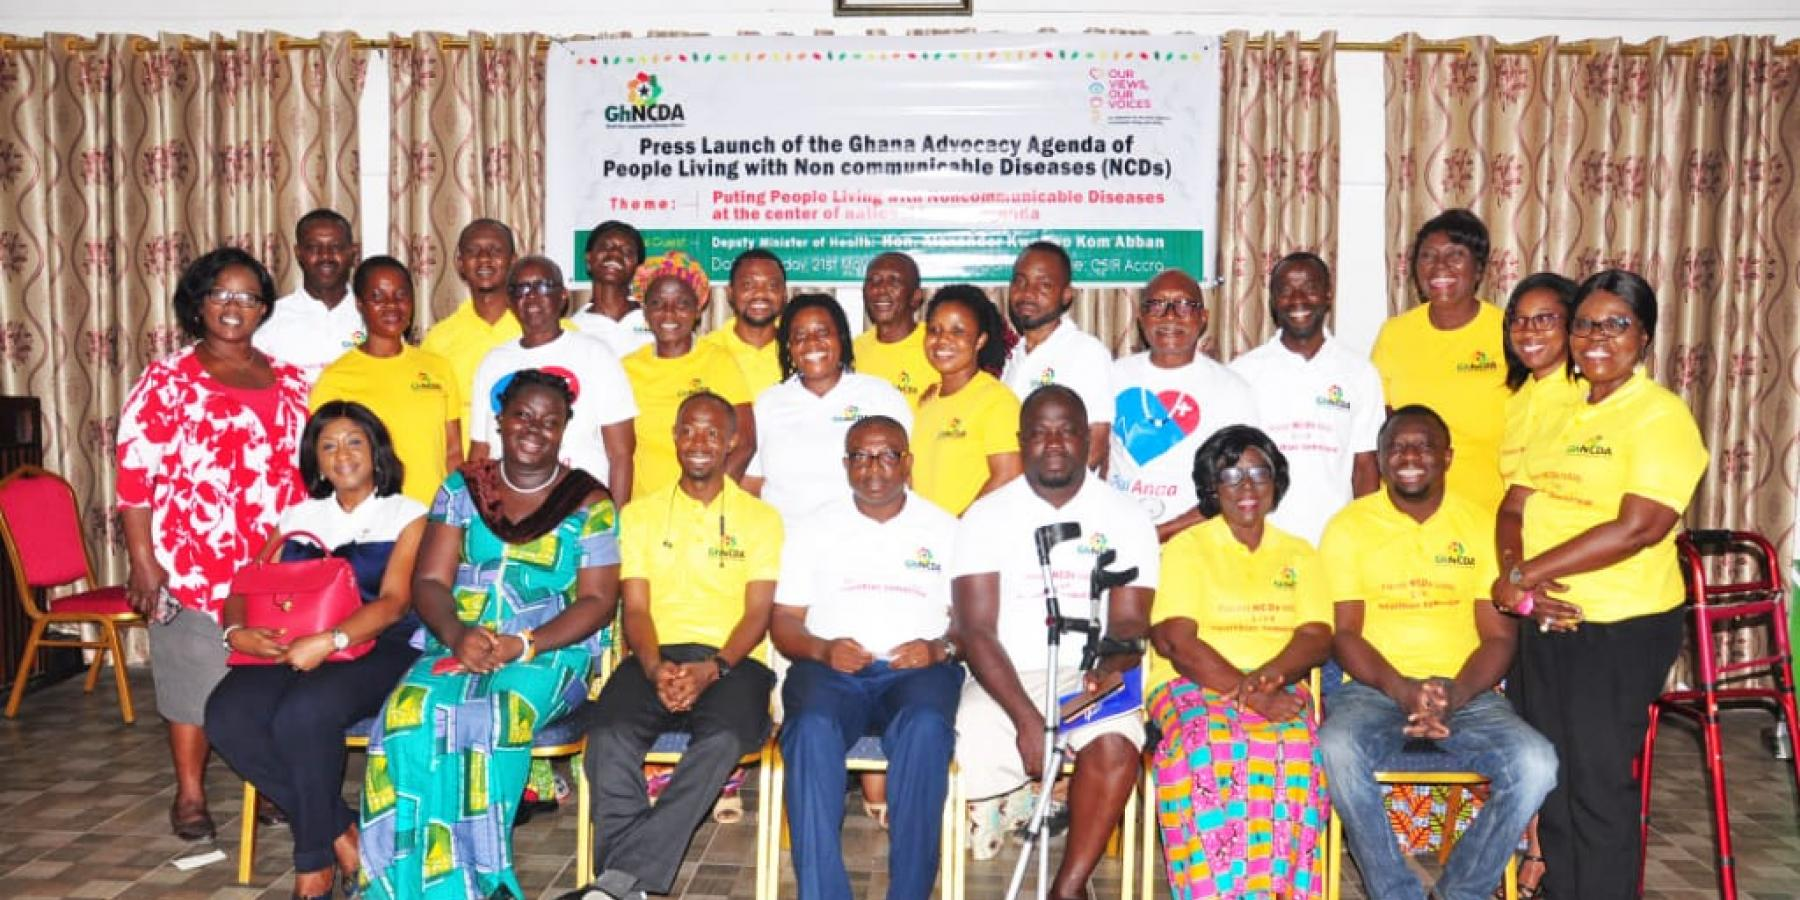 Launch of Ghana Advocacy Agenda of People Living with NCDs